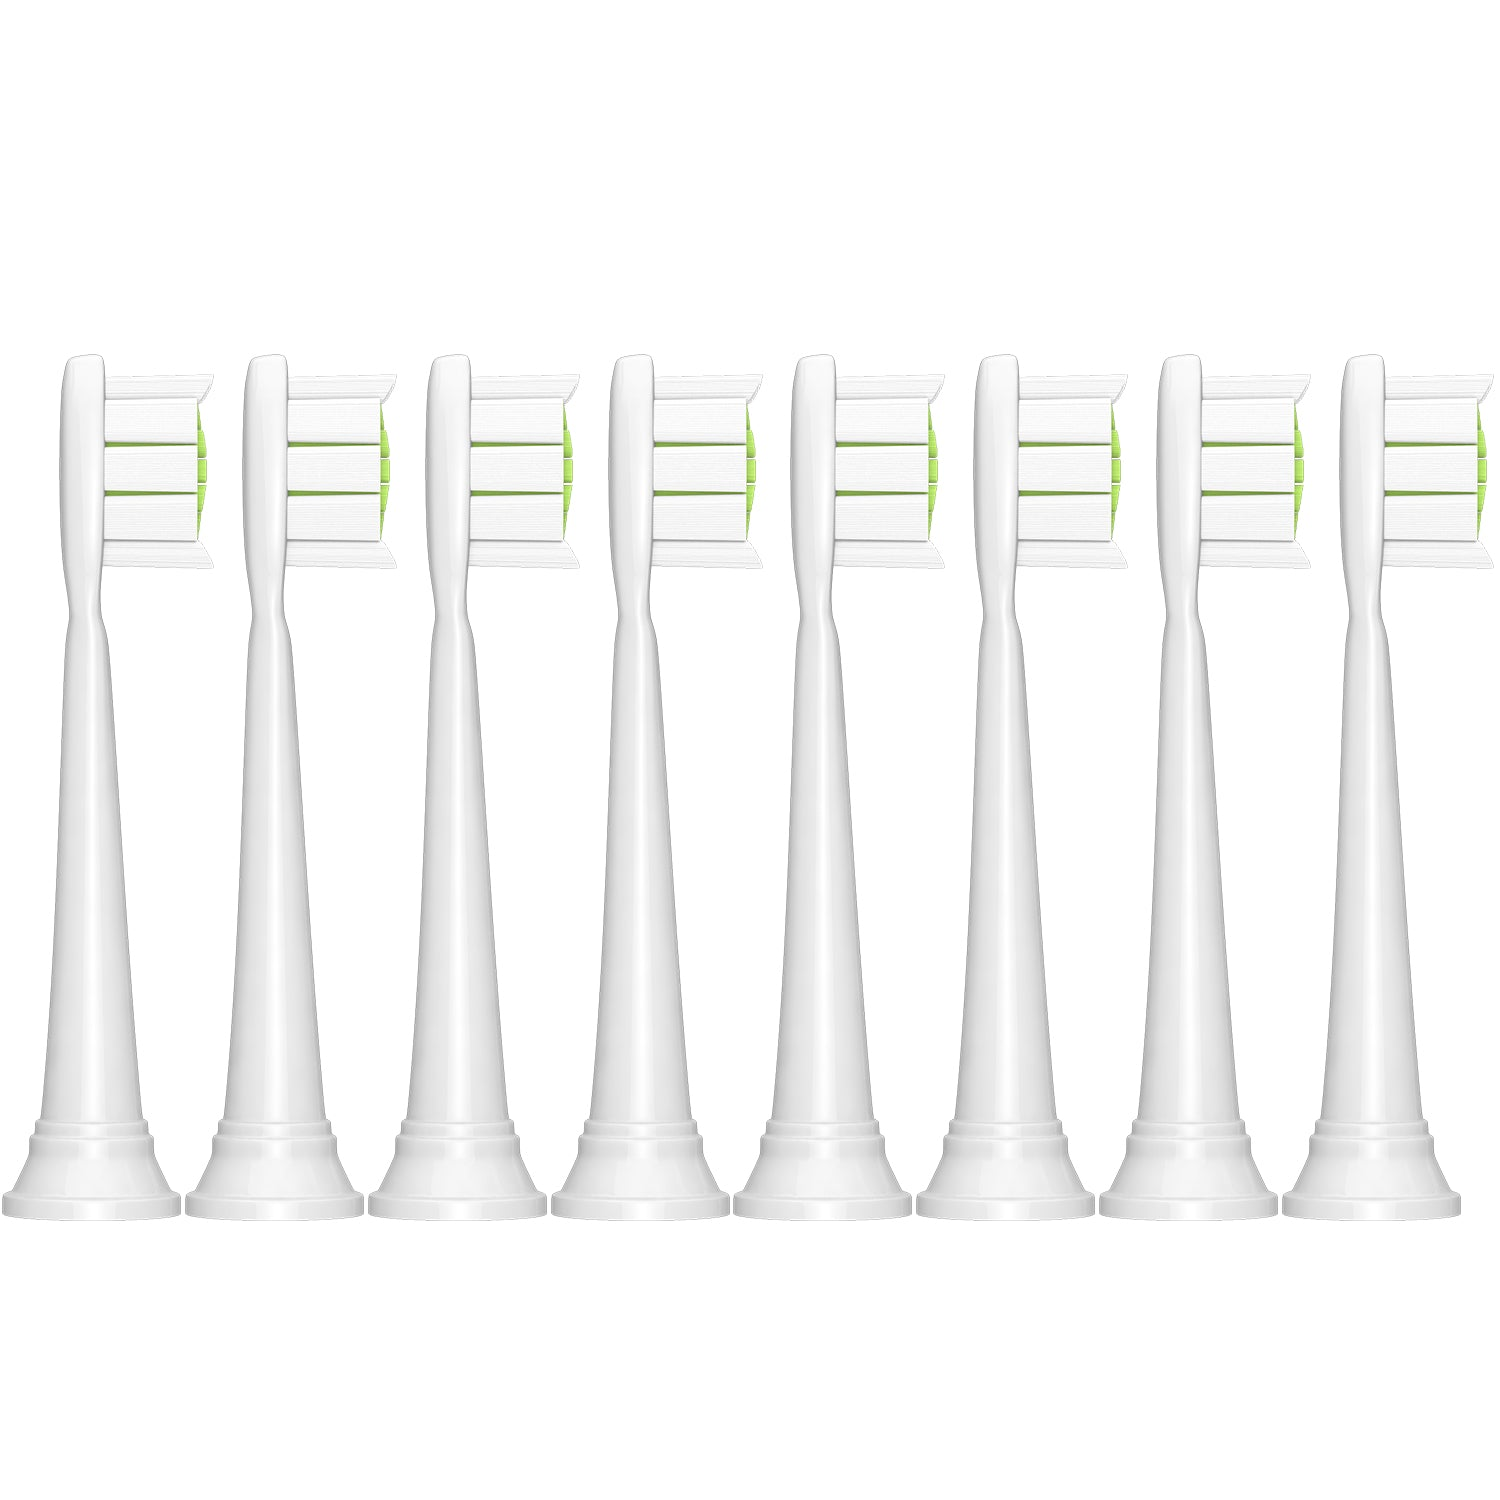 Brushmo premium replacement toothbrush heads for Philips Sonicare DiamondClean, White